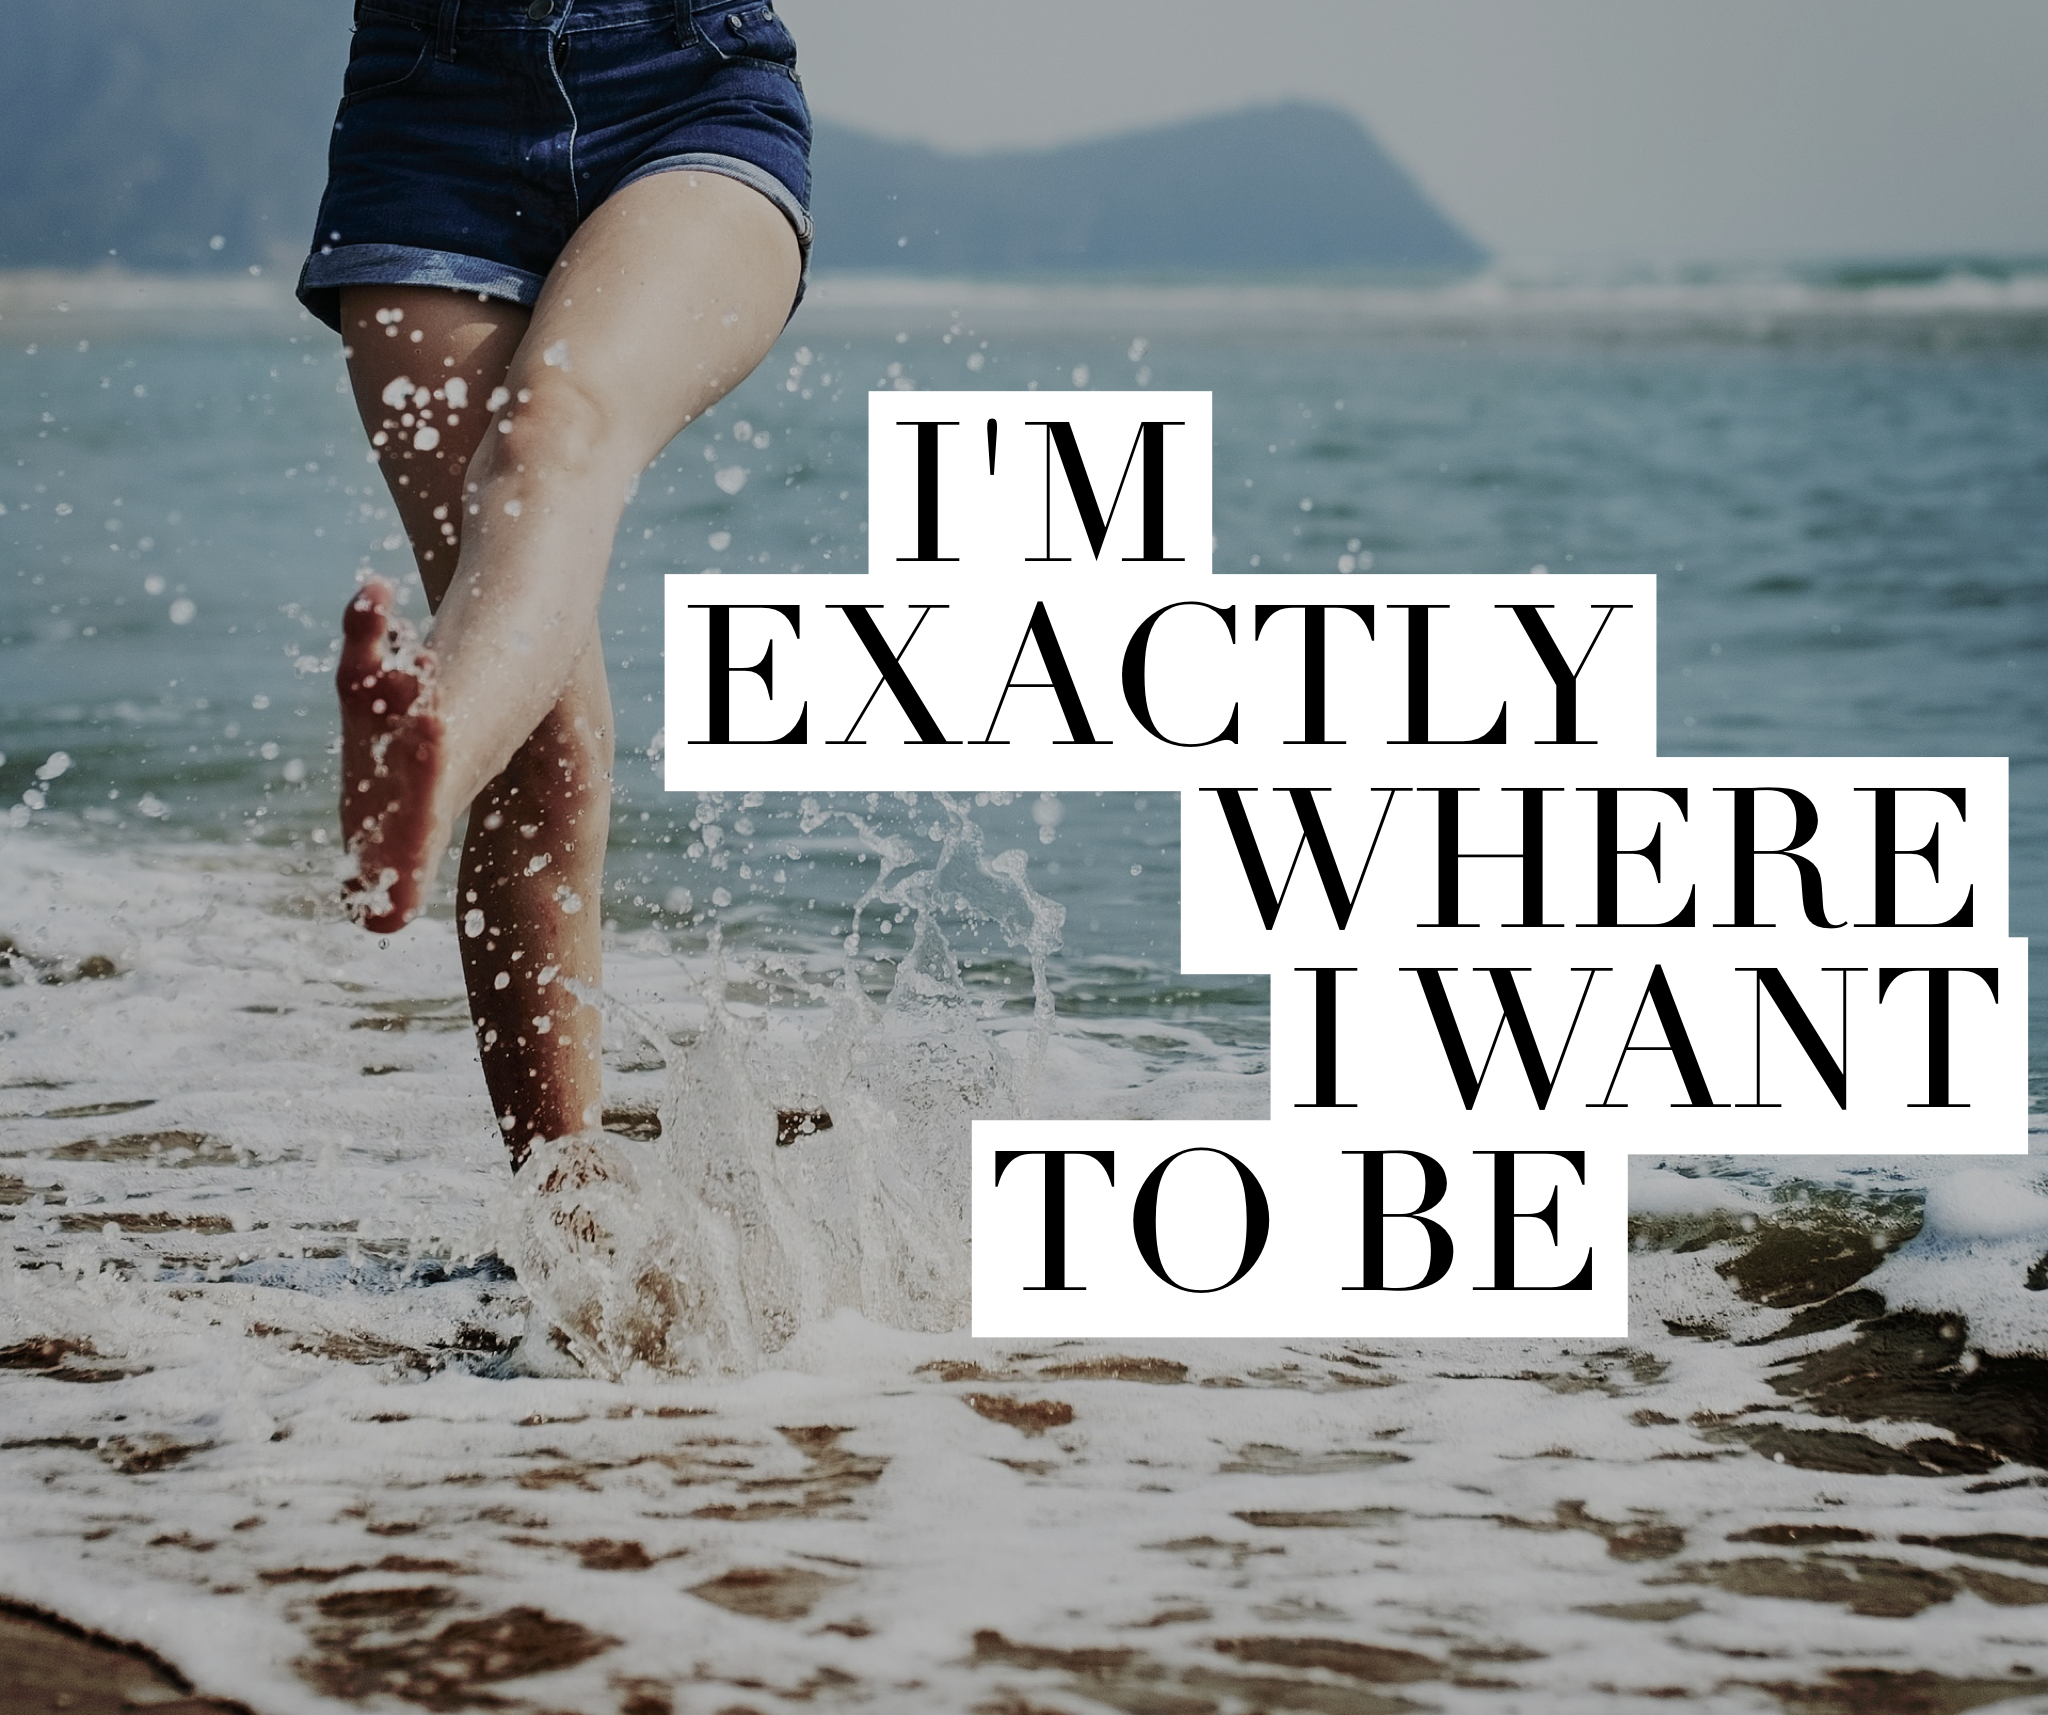 Manifesting Mantra: I'm exactly where I want to be